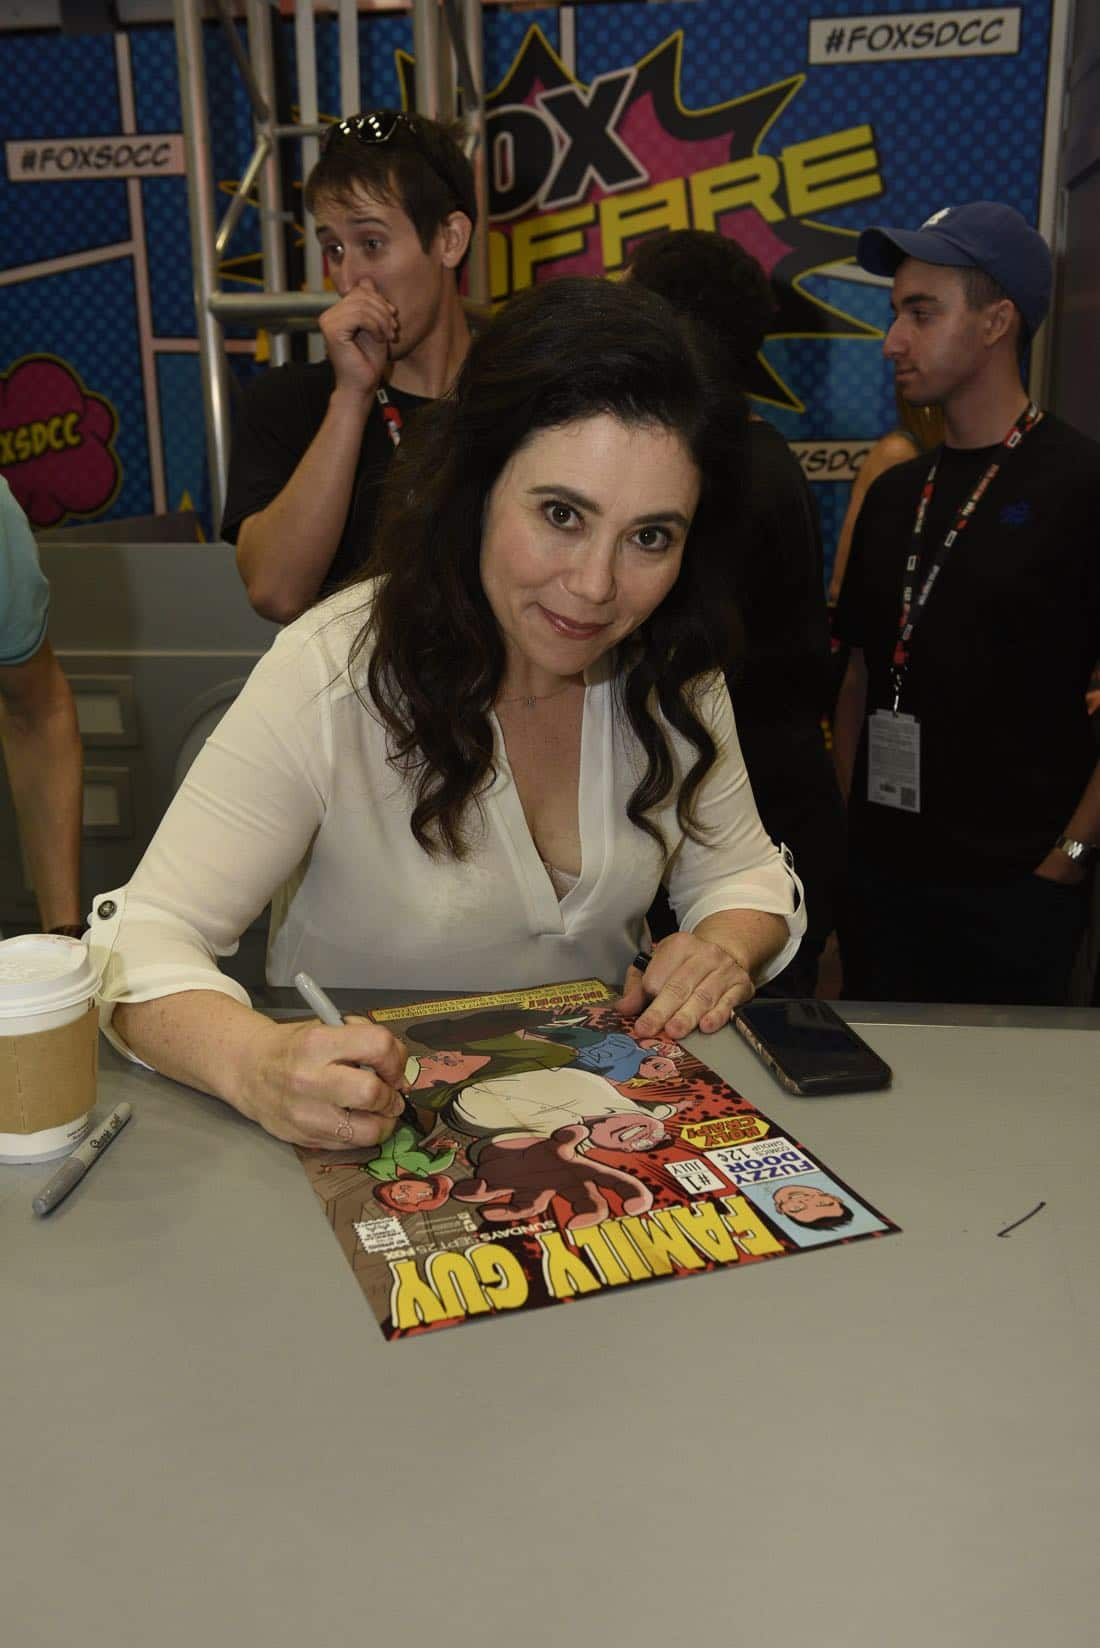 FOX FANFARE AT SAN DIEGO COMIC-CON © 2016: FAMILY GUY cast member Alex Borstein during FAMILY GUY booth signing on Saturday, July 23 at the FOX FANFARE AT SAN DIEGO COMIC-CON © 2016. CR: Alan Hess/FOX © 2016 FOX BROADCASTING